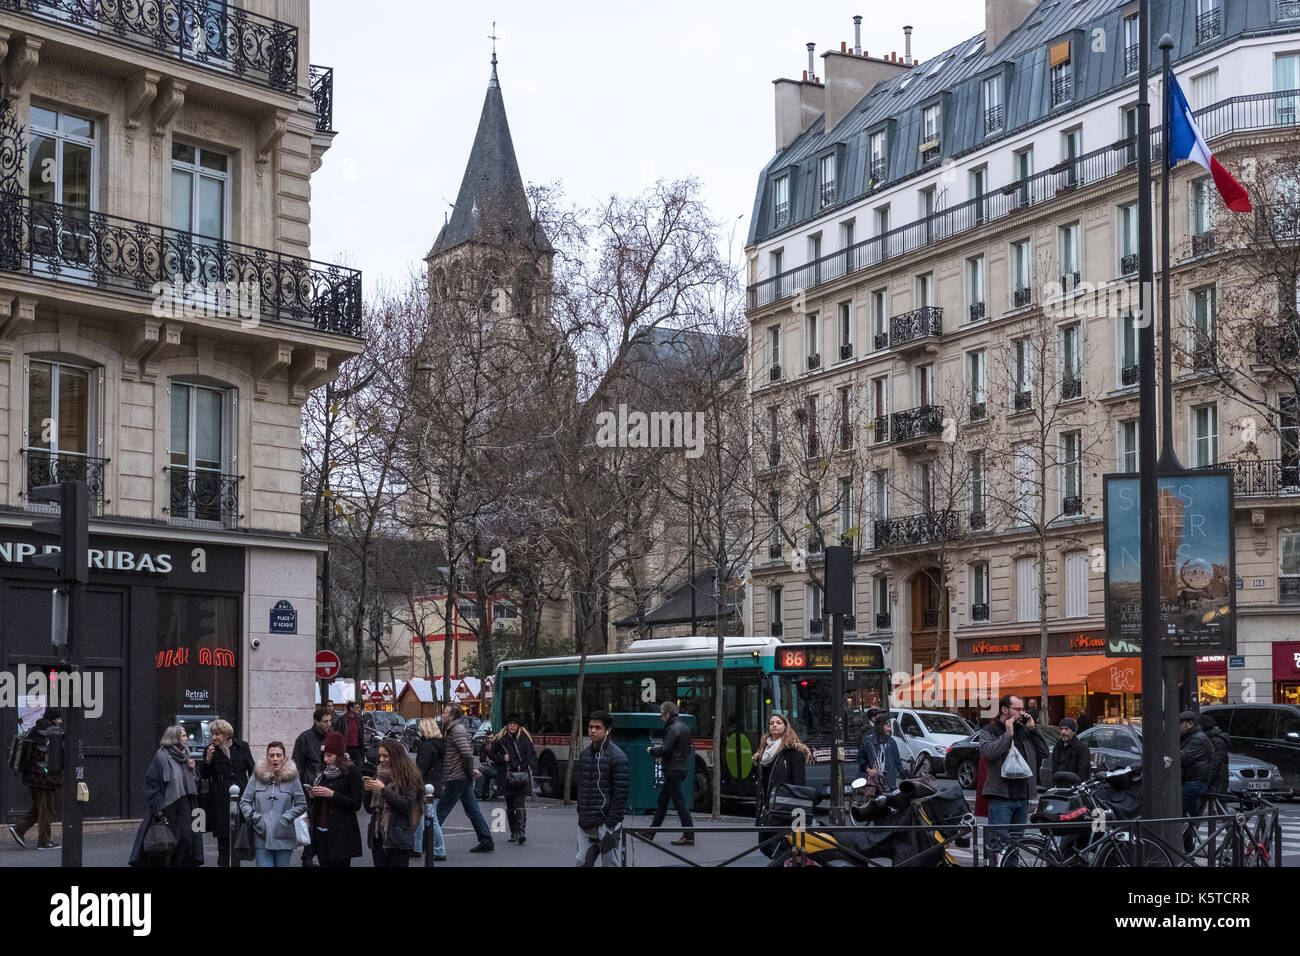 Shoppers on the lively Boulevard Saint Germain des Pres in Paris, France, just before Christmas. - Stock Image